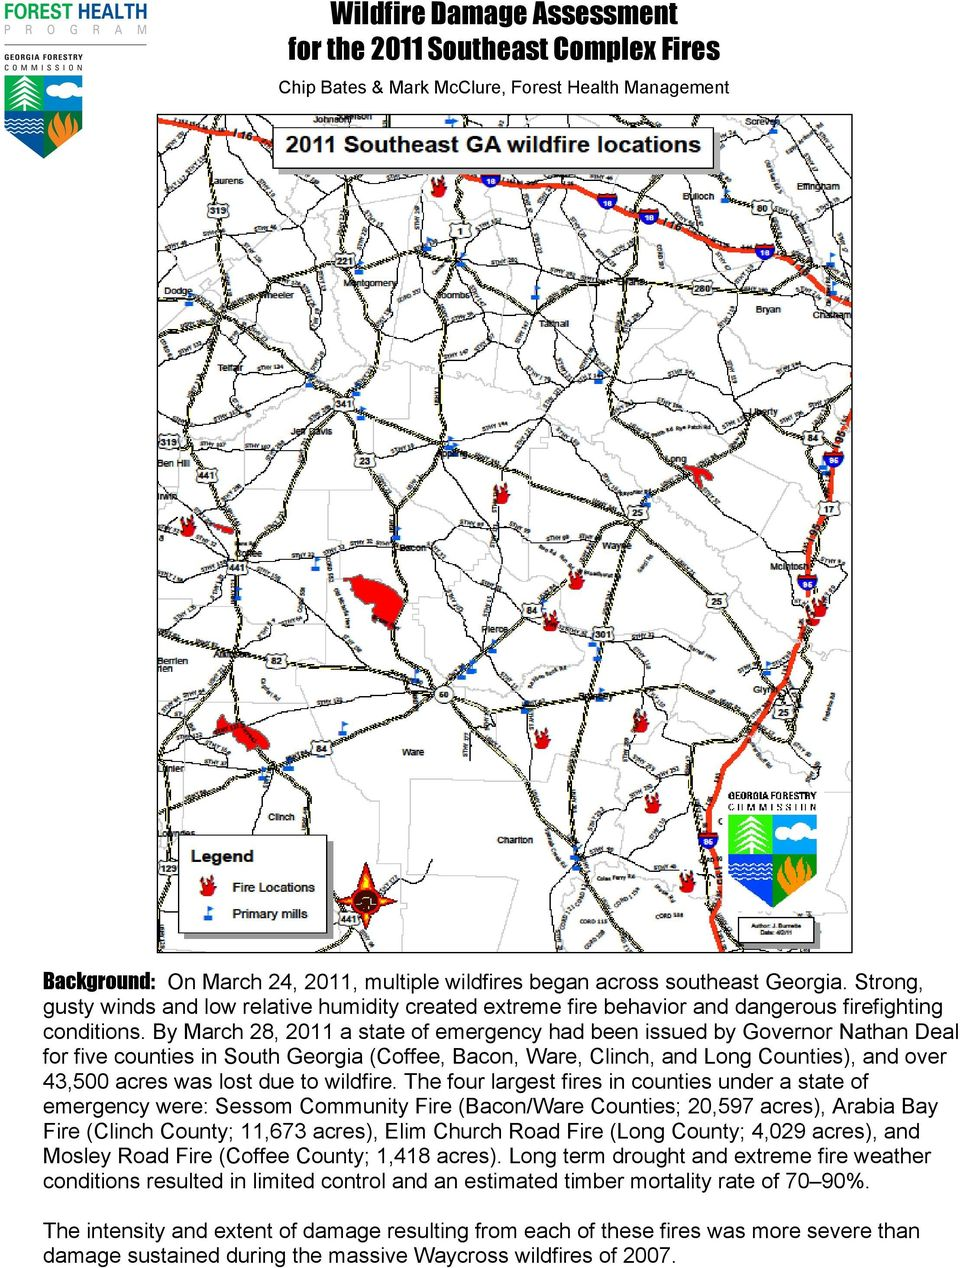 By March 28, 2011 a state of emergency had been issued by Governor Nathan Deal for five counties in South Georgia (Coffee, Bacon, Ware, Clinch, and Long Counties), and over 43,500 acres was lost due